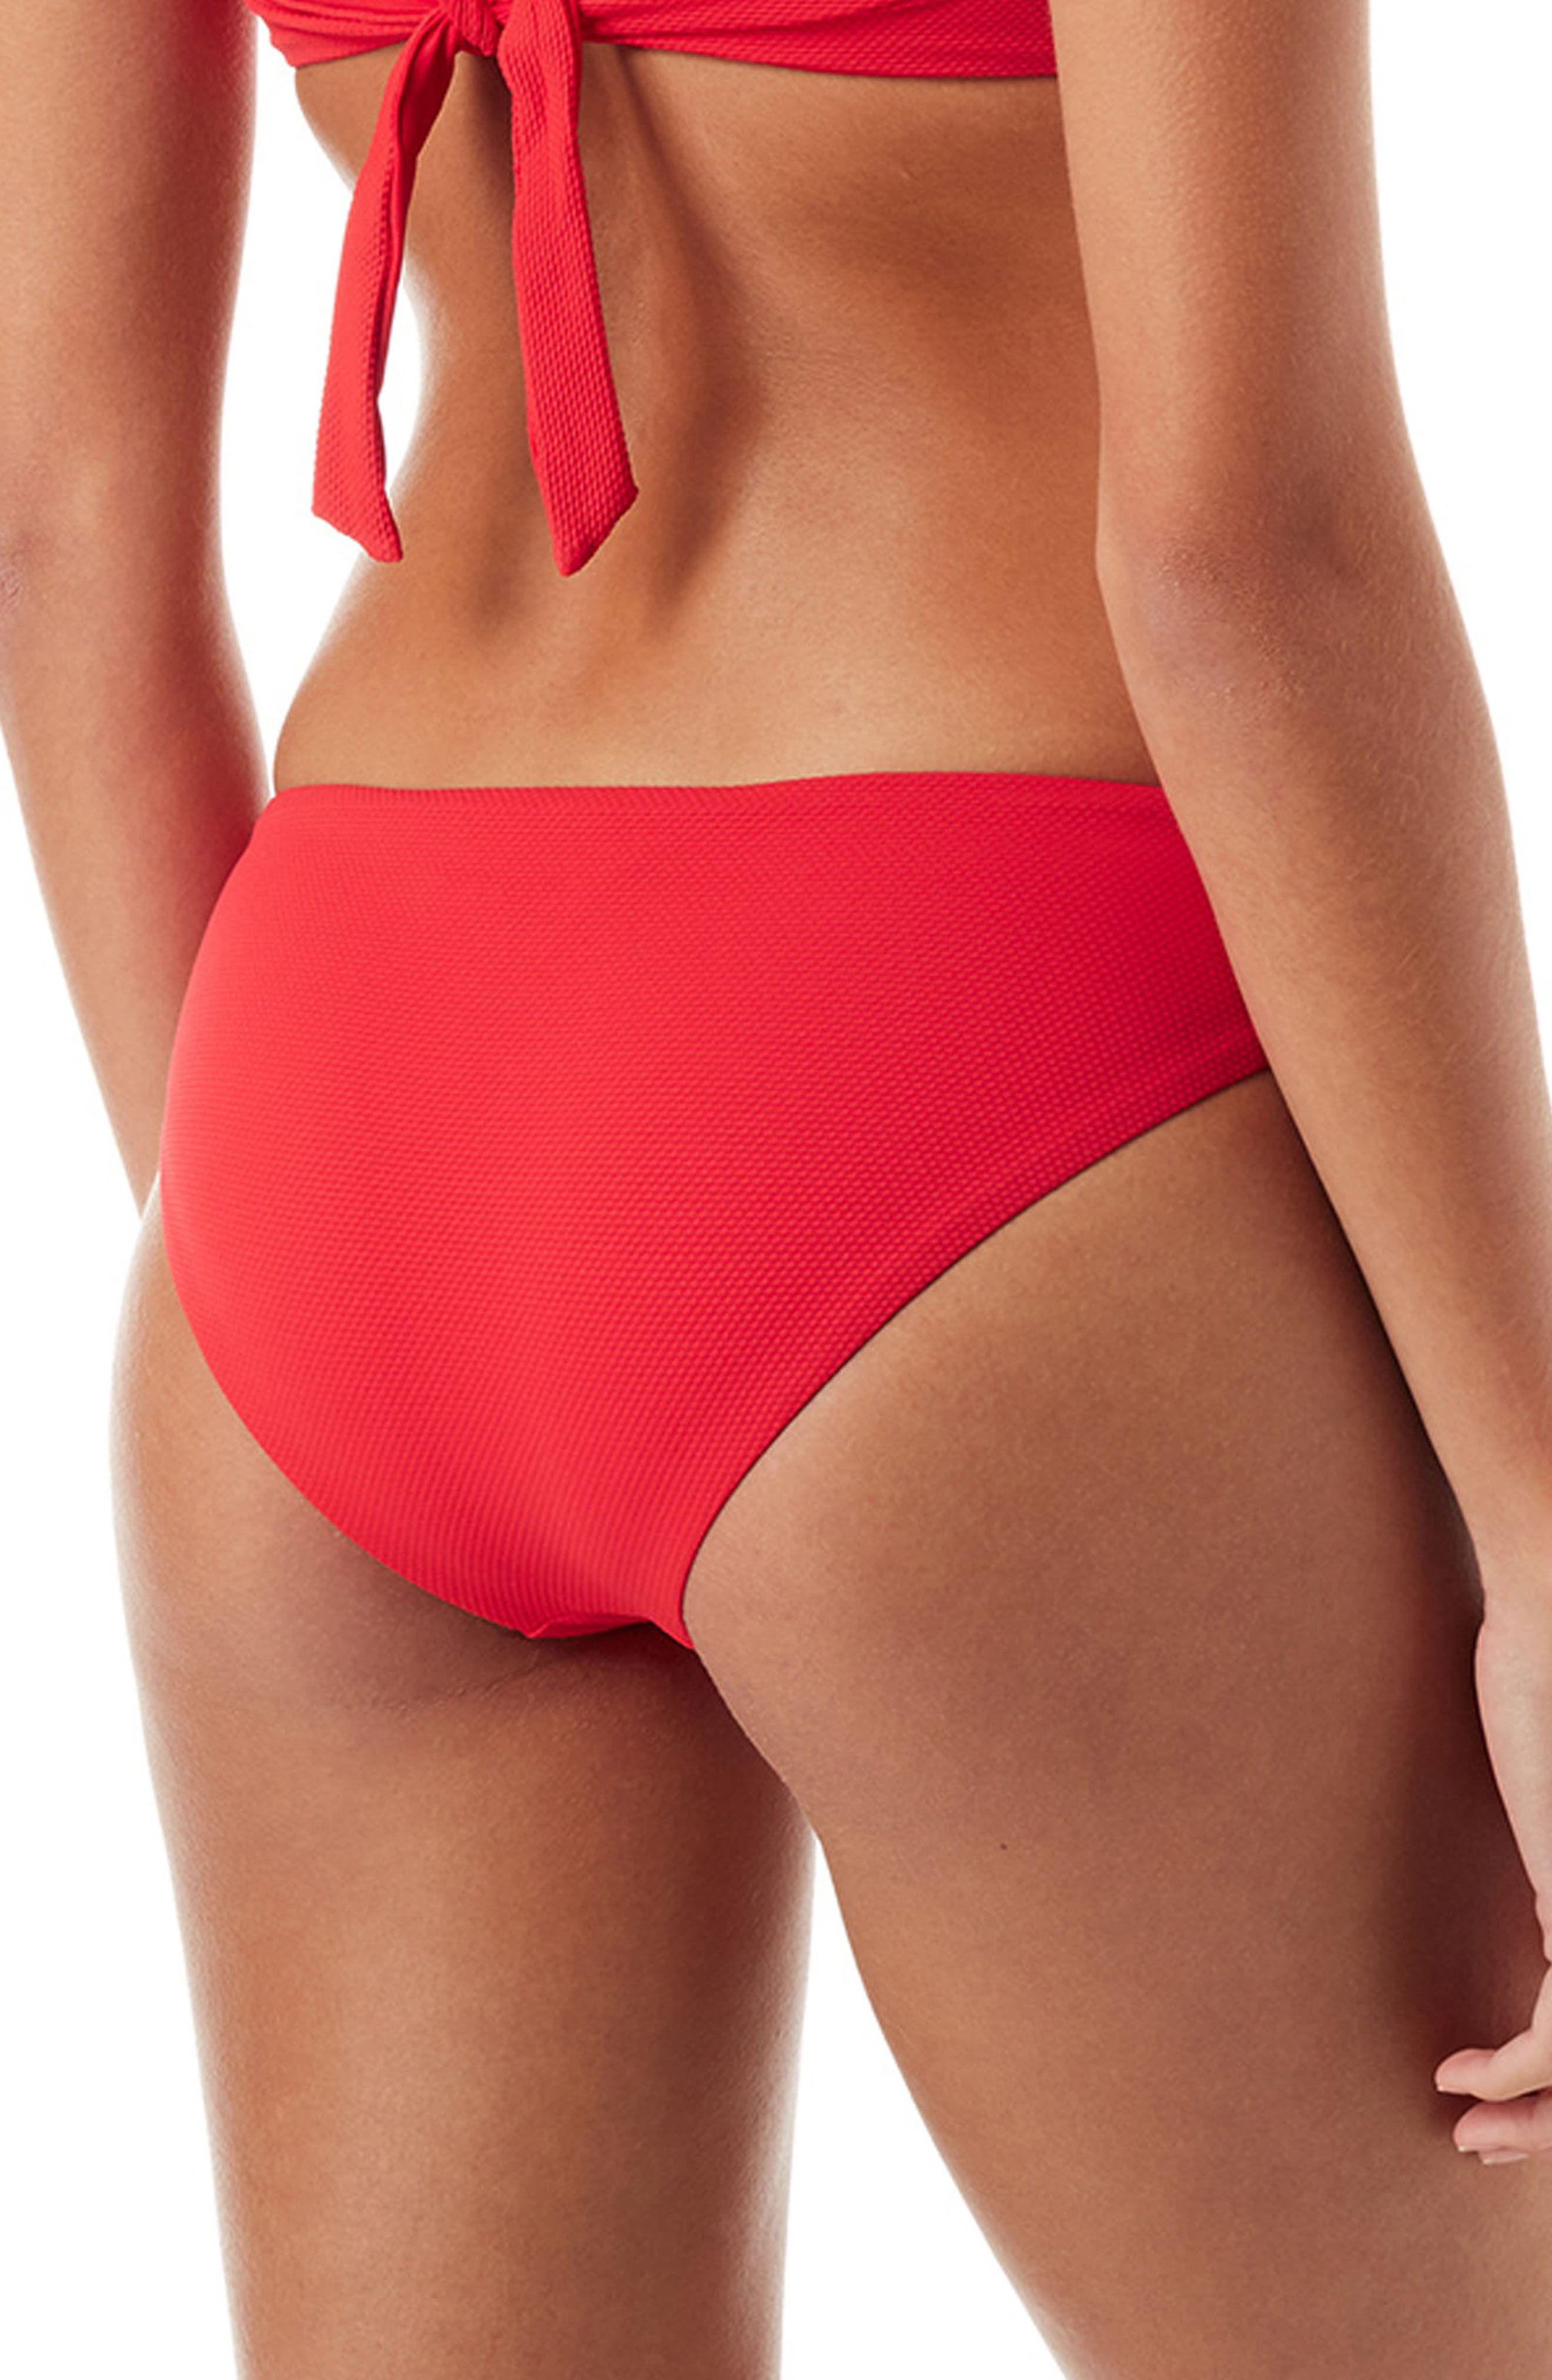 Angola Bikini Bottoms,                             Alternate thumbnail 2, color,                             PIQUE RED